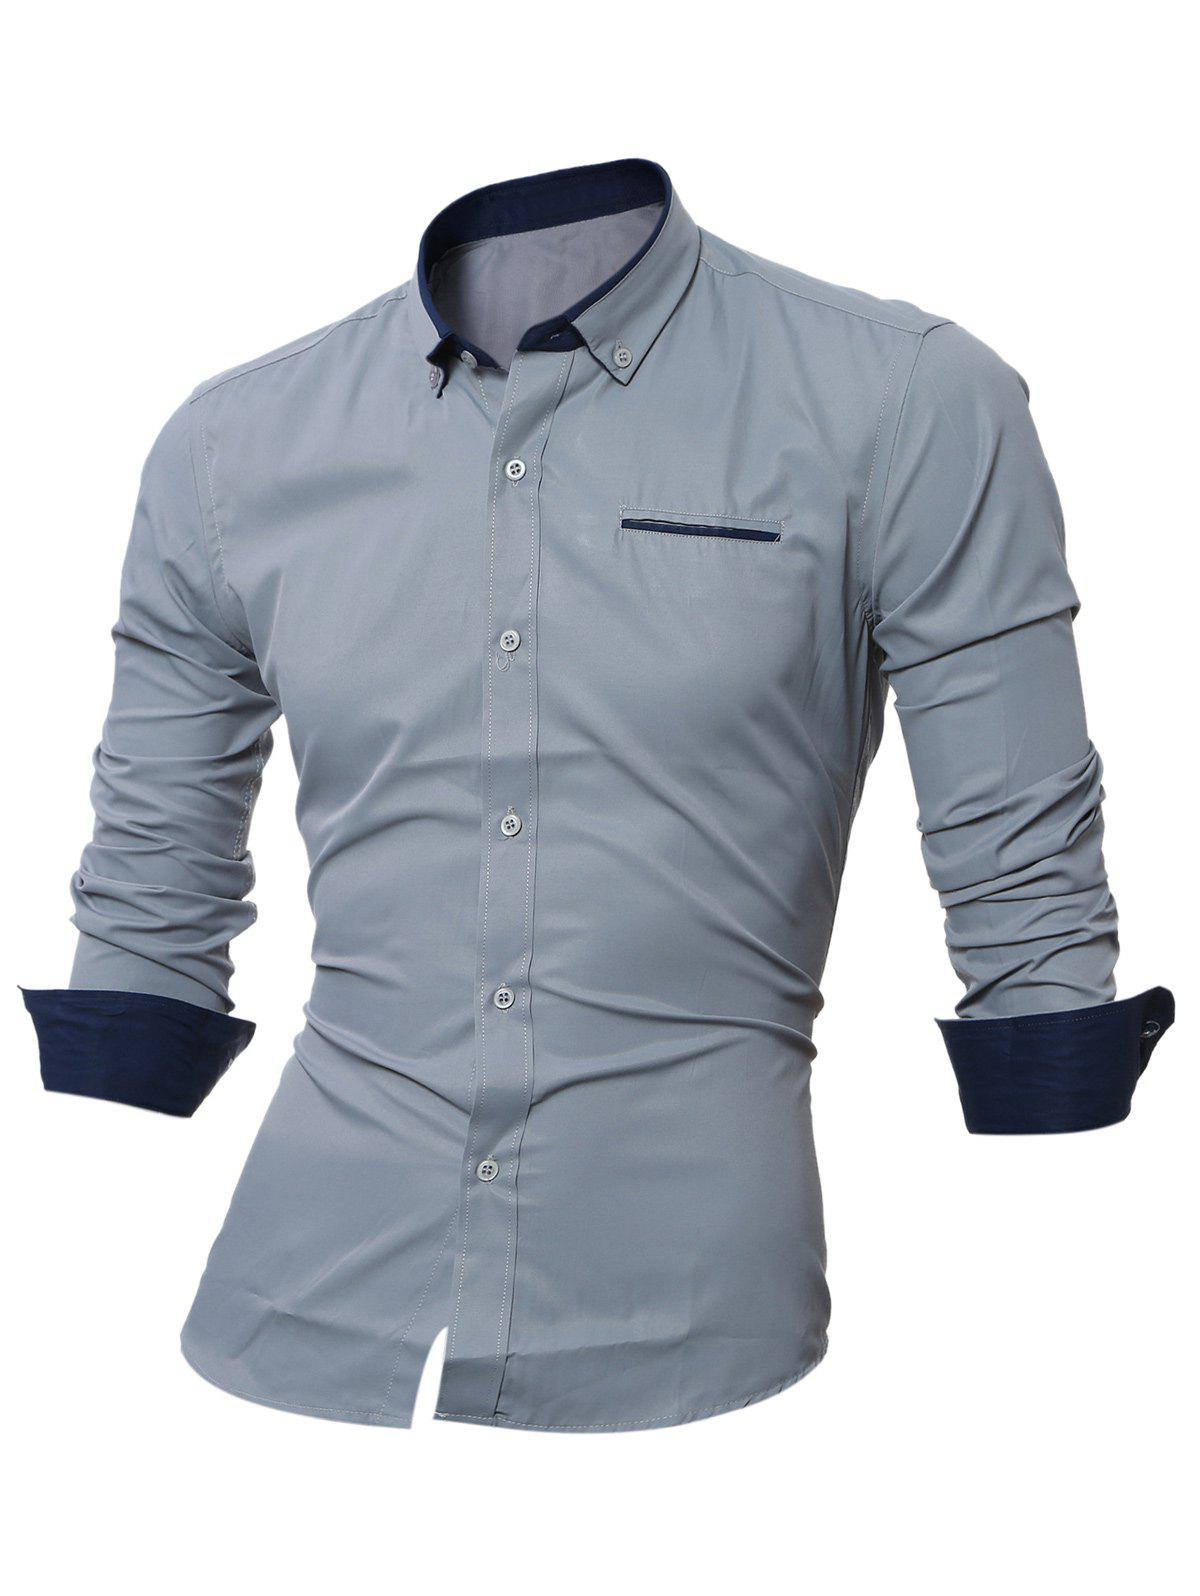 Long Sleeve Contrast Pocket Button Down Shirt - GRAY M